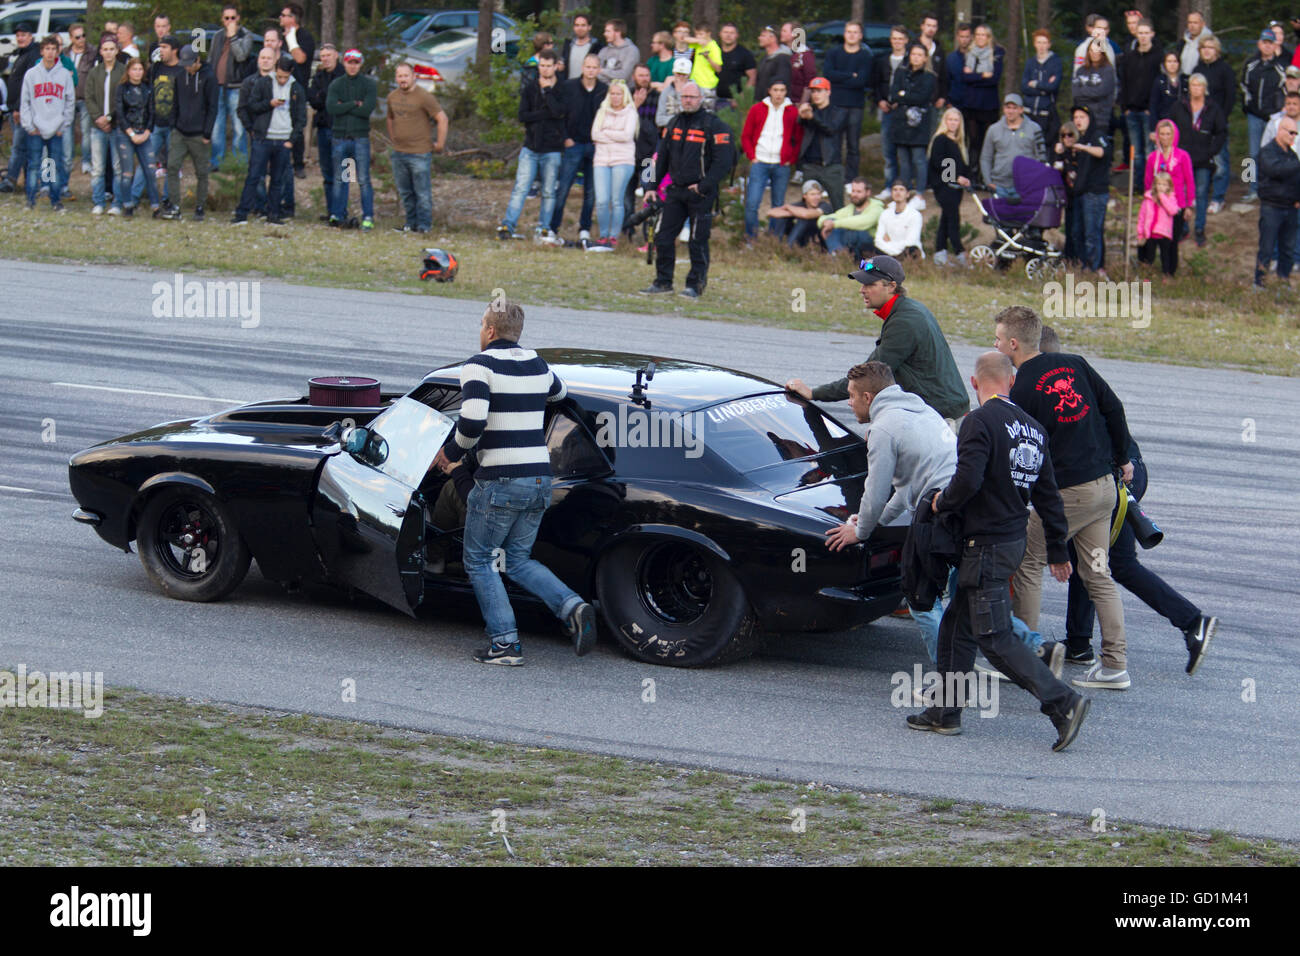 cars in an illegal street race in sweden stock photo